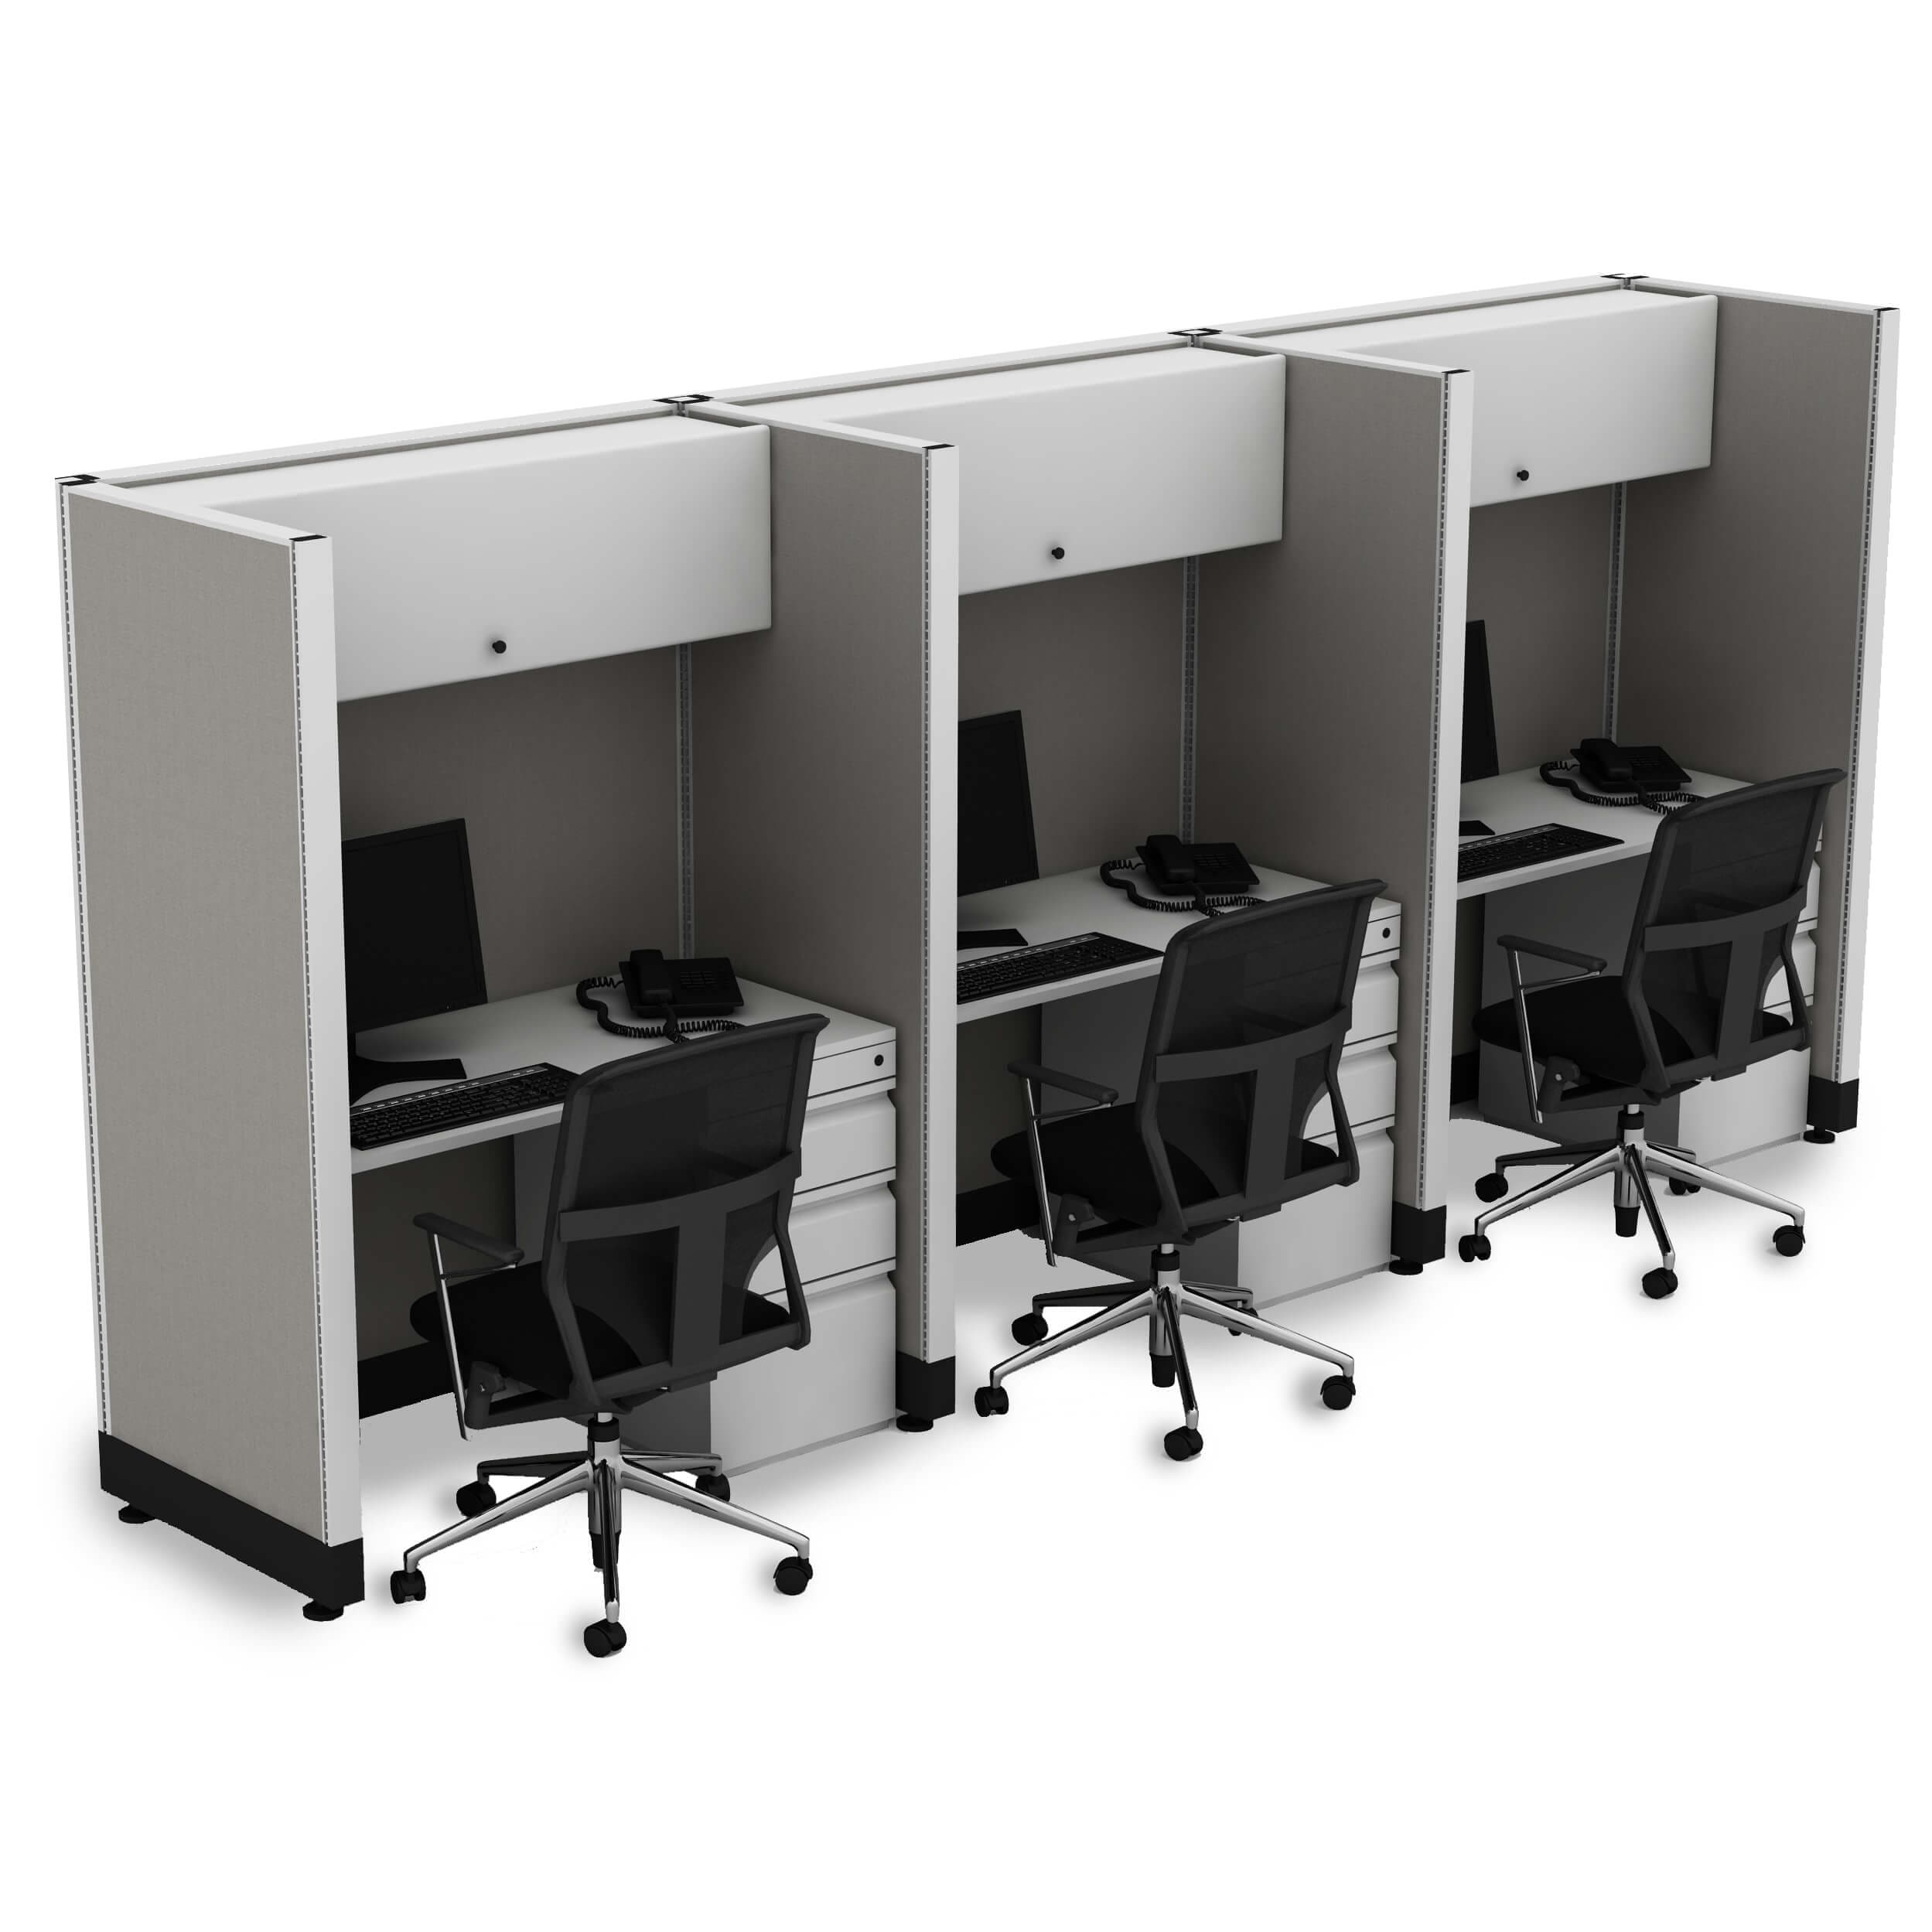 Hoteling Stations 67H 3pack Inline Powered (2x3 - White Desk White Paint - Assembled)